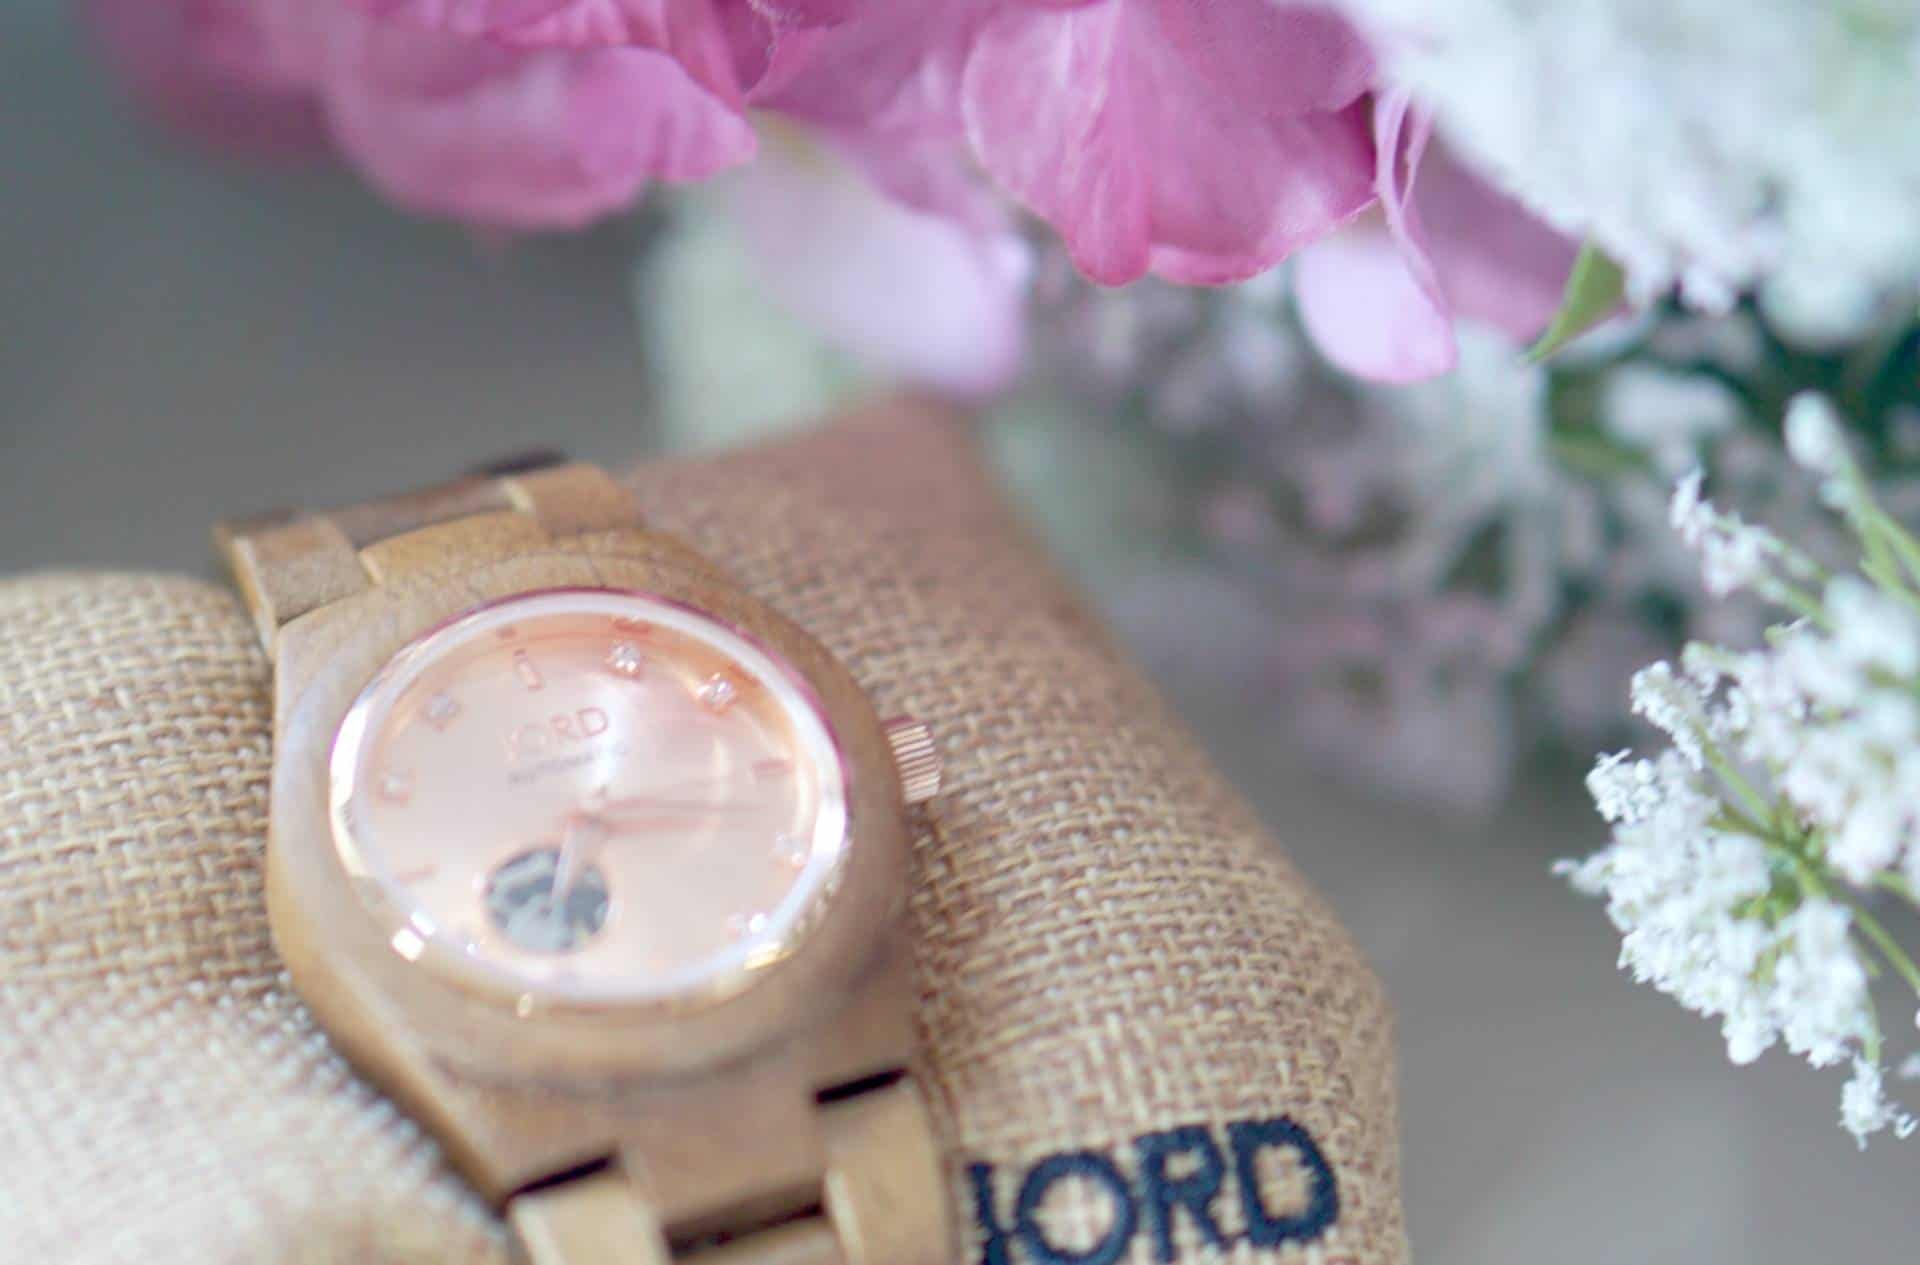 Jord Wood Watches and Time Managment